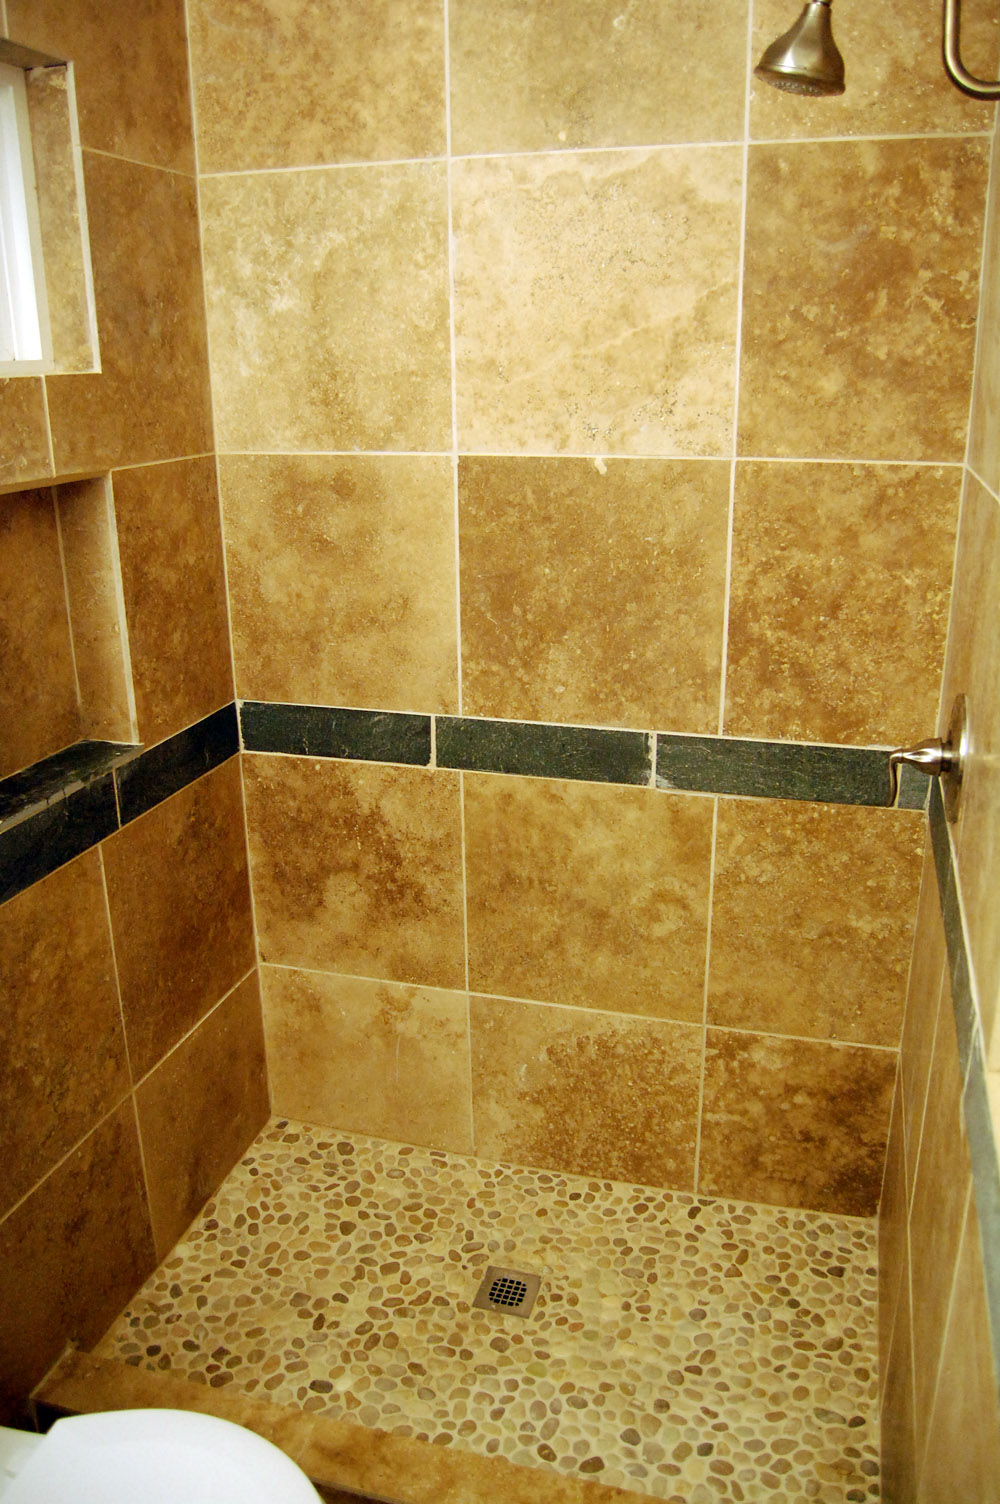 How To Make A Relatively Sweet Shower Cheap Mr Money Mustache - Cost to redo shower stall